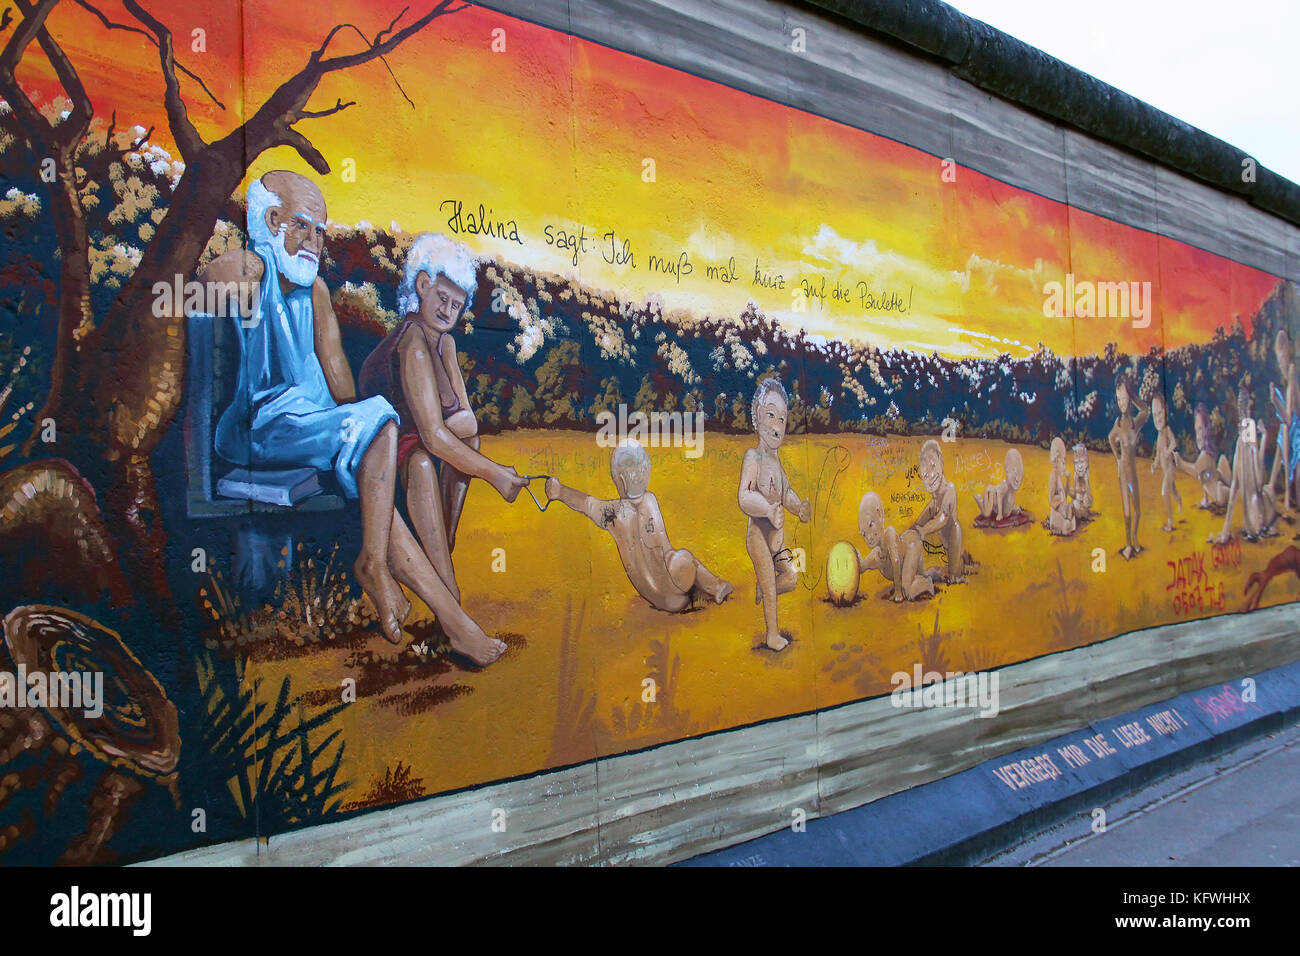 Fragment of the East Side Gallery exhibition, the largest outdoor art gallery in the world, painted on the segment - Stock Image